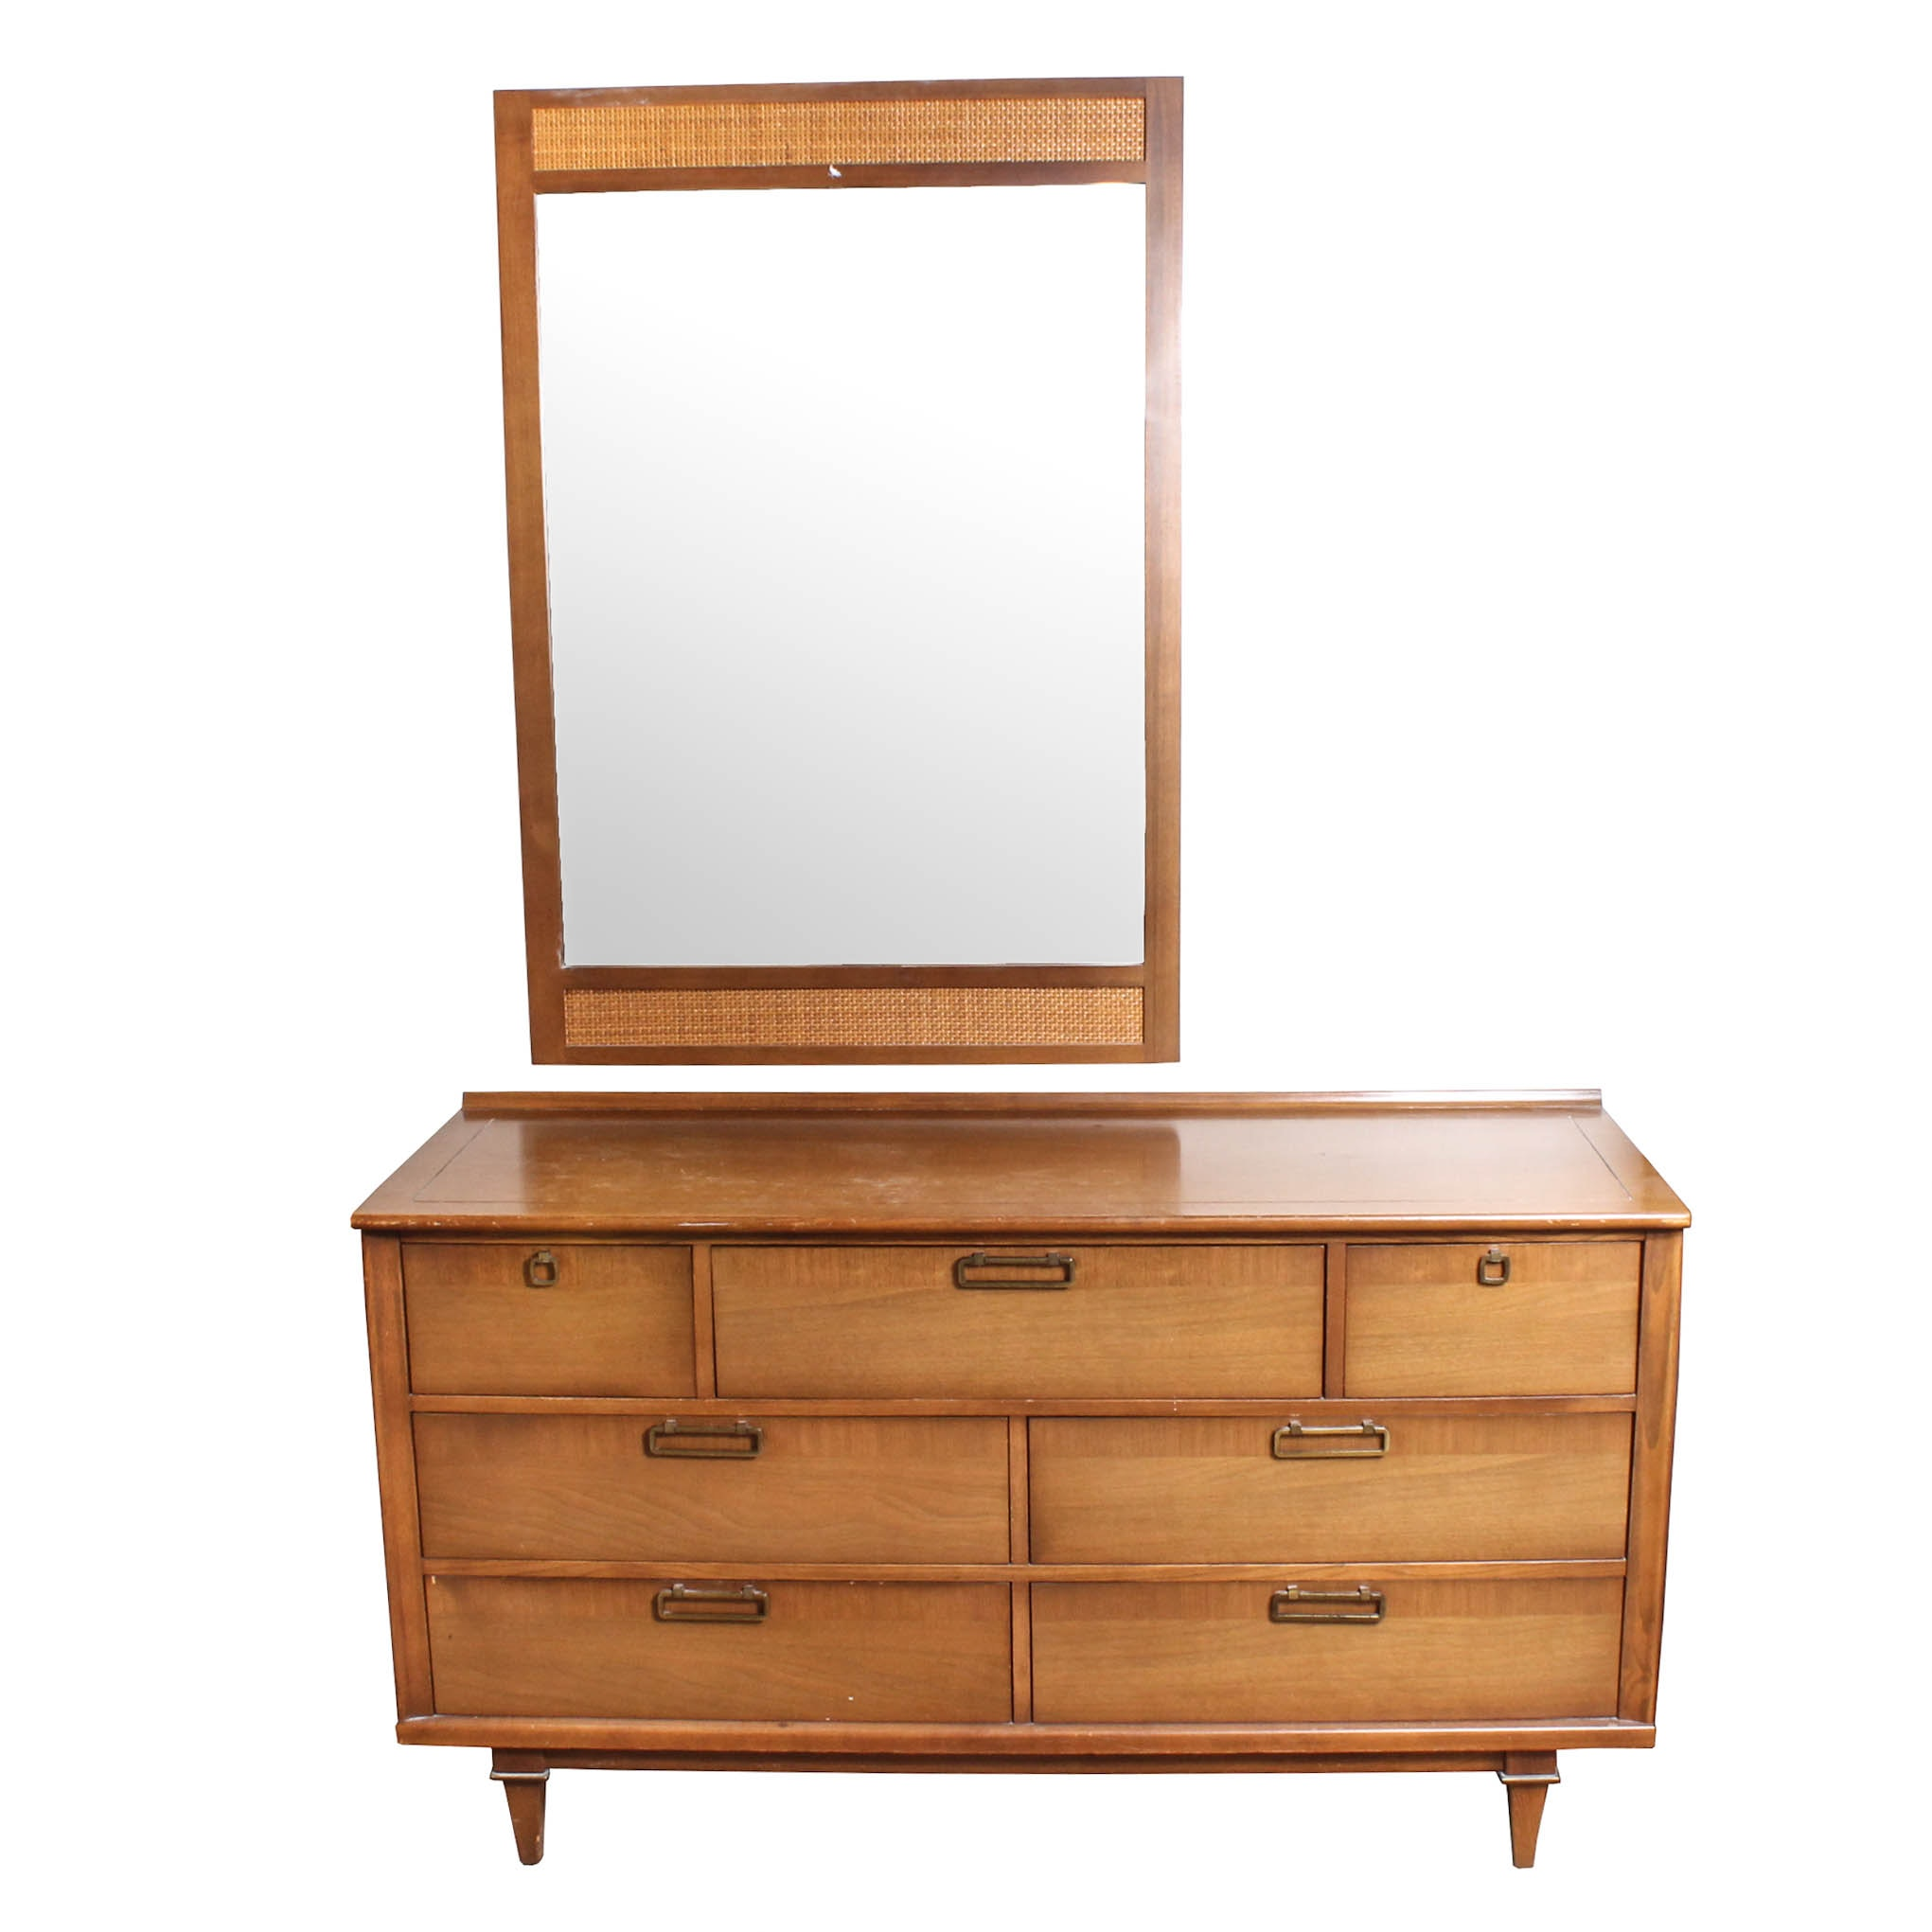 Vintage Mid-Century Dresser with Wall Mirror by Stanley